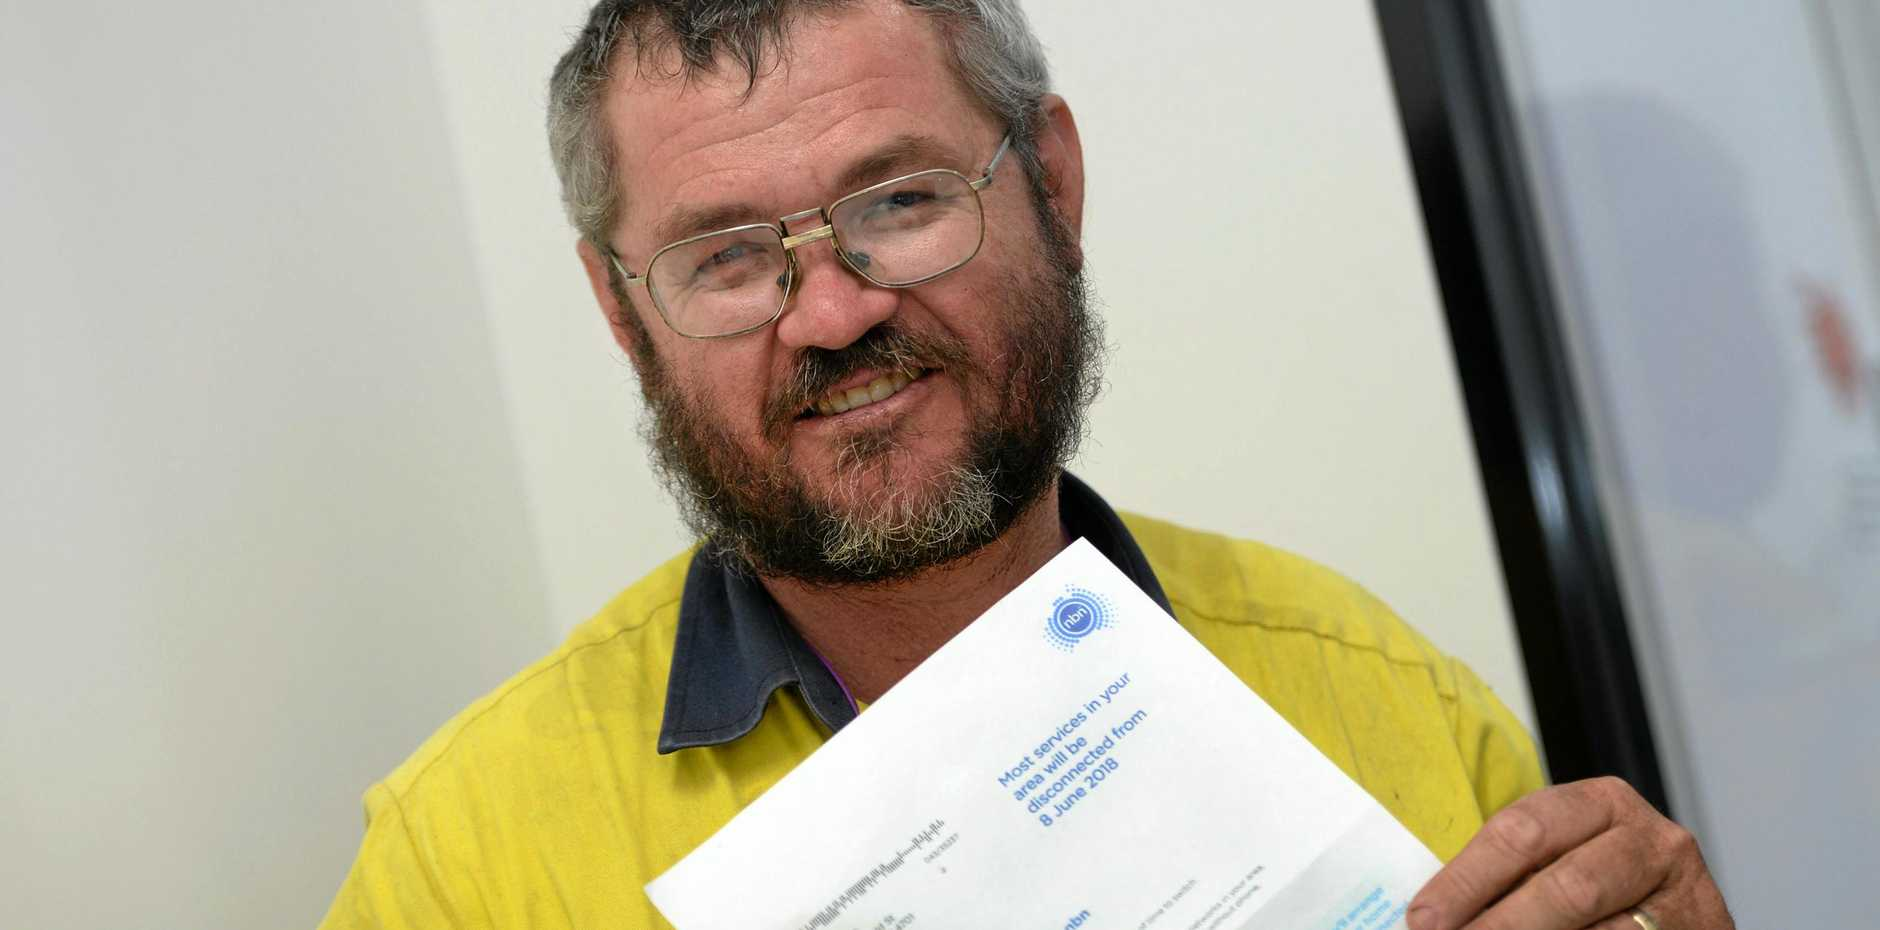 ROOKIE ERROR: Paul Madsen holding a letter from NBN addressed to